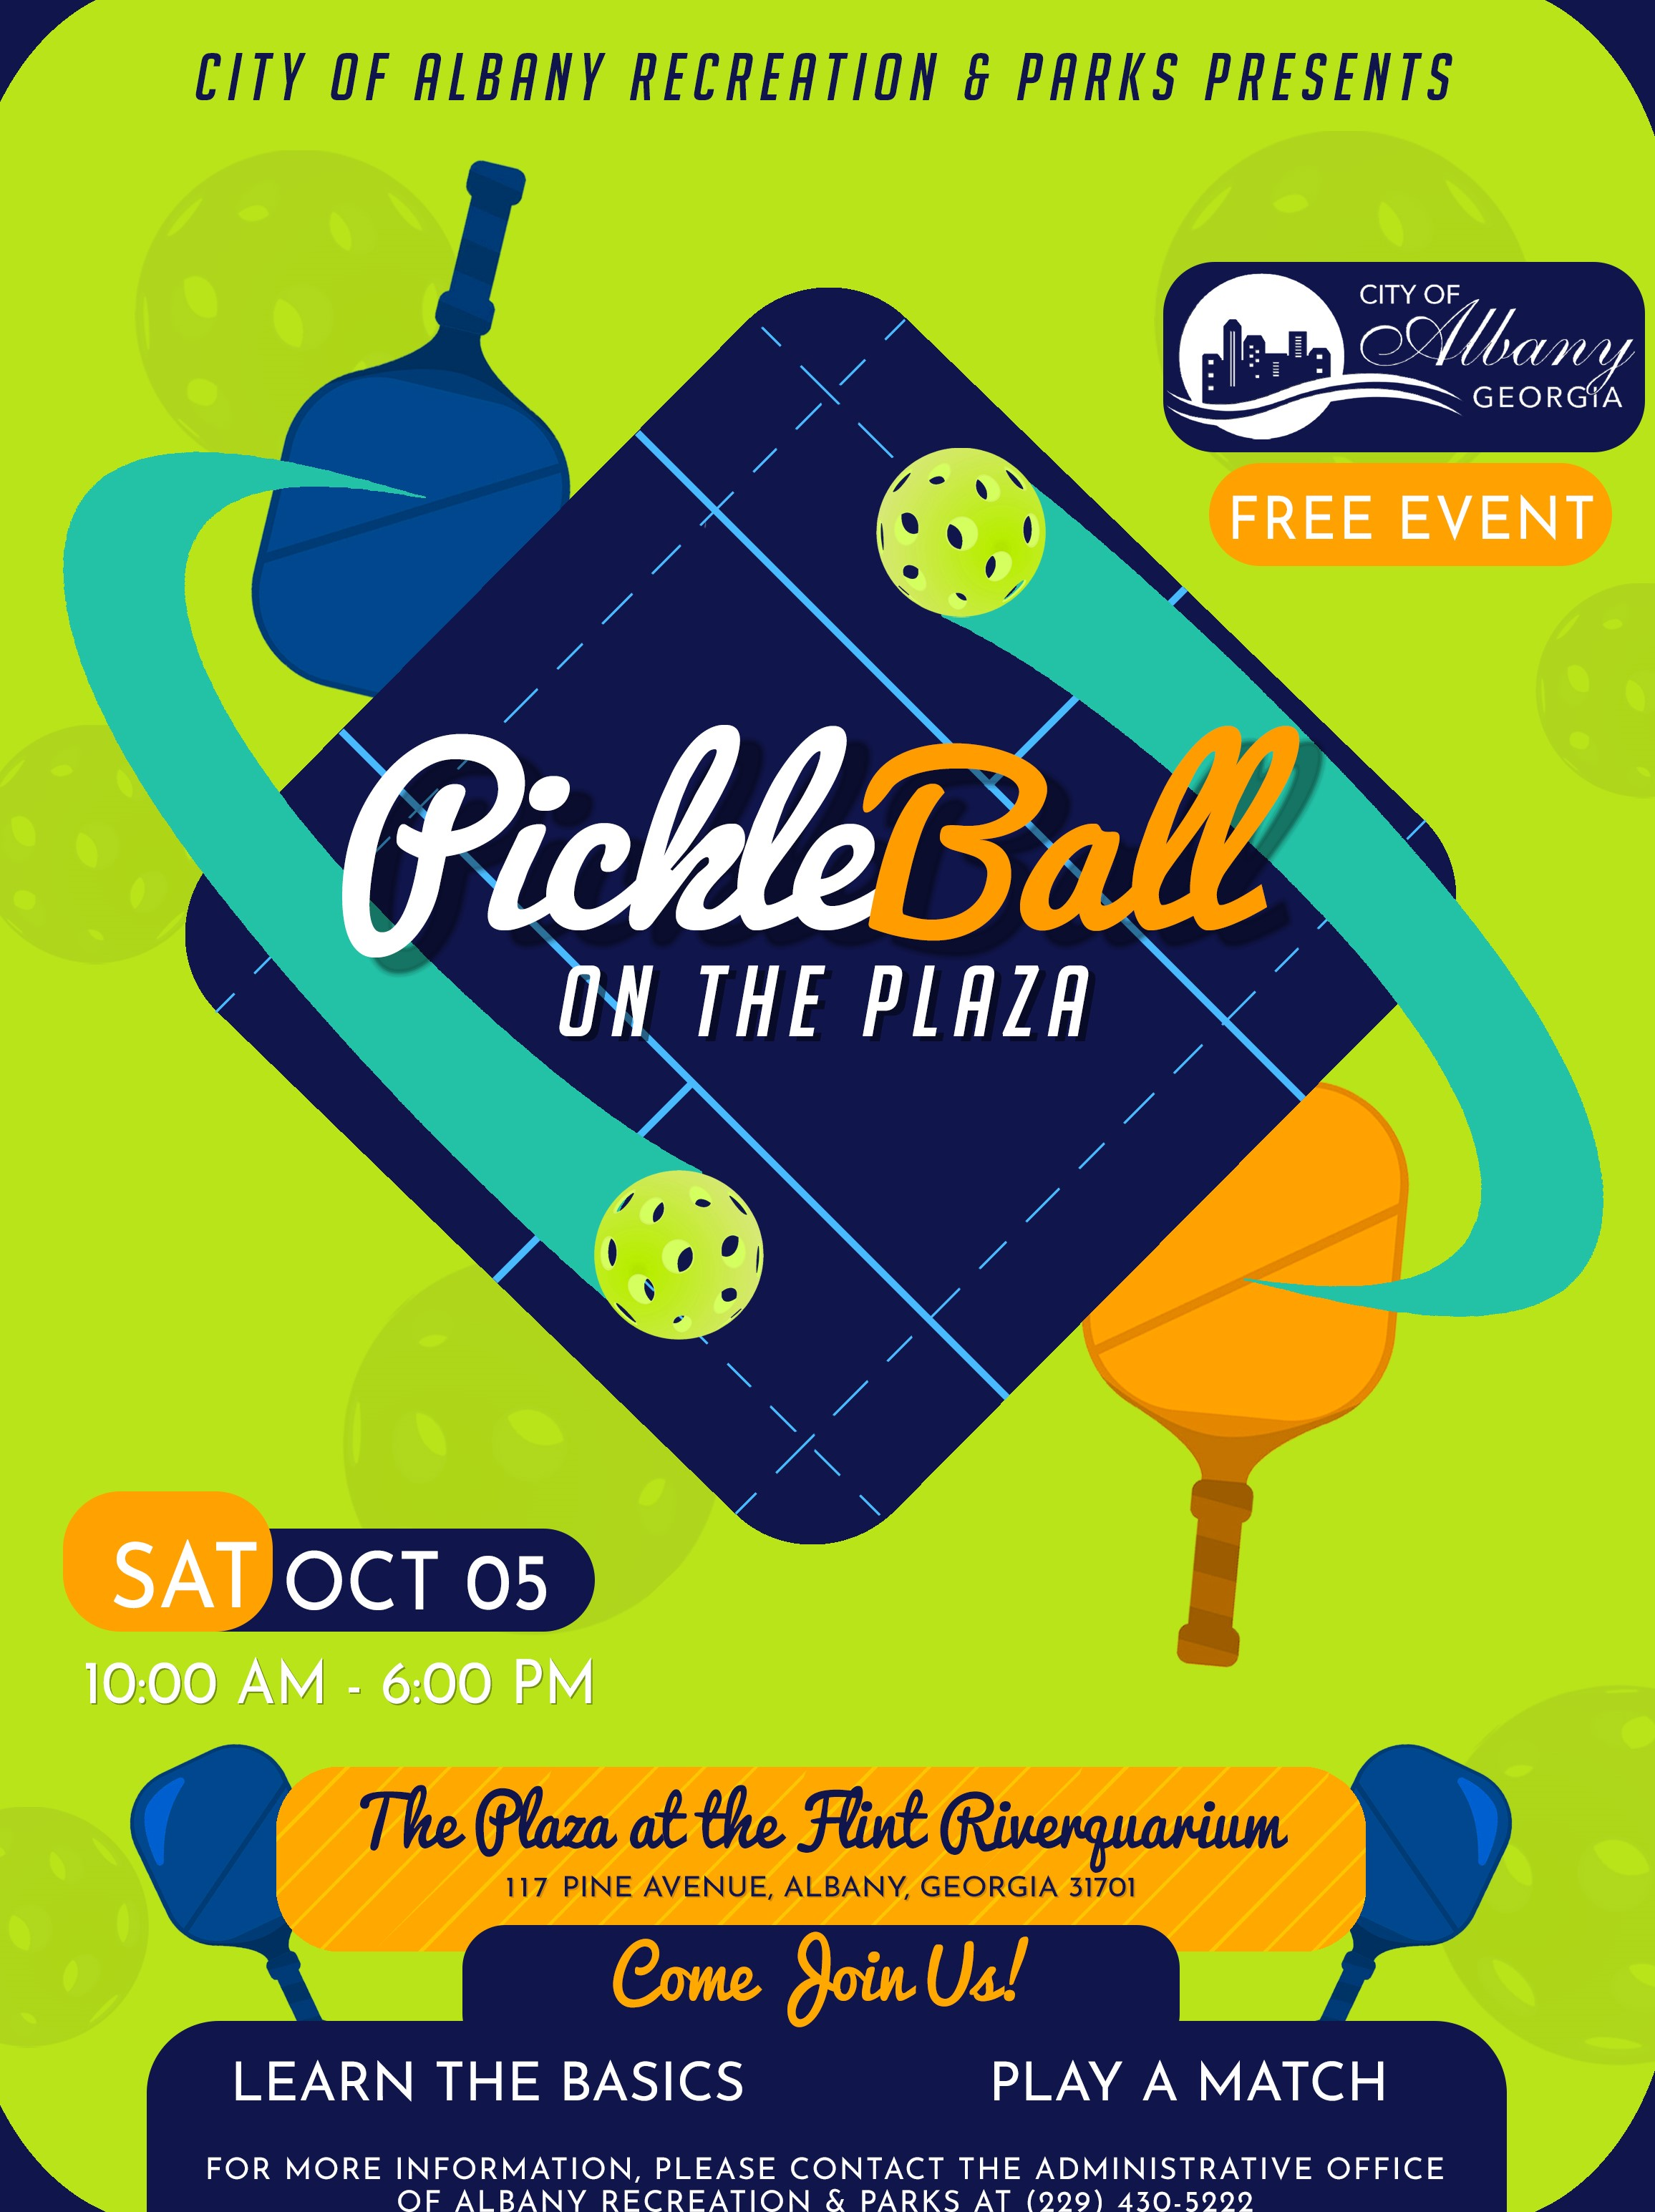 Pickleball on the Plaza